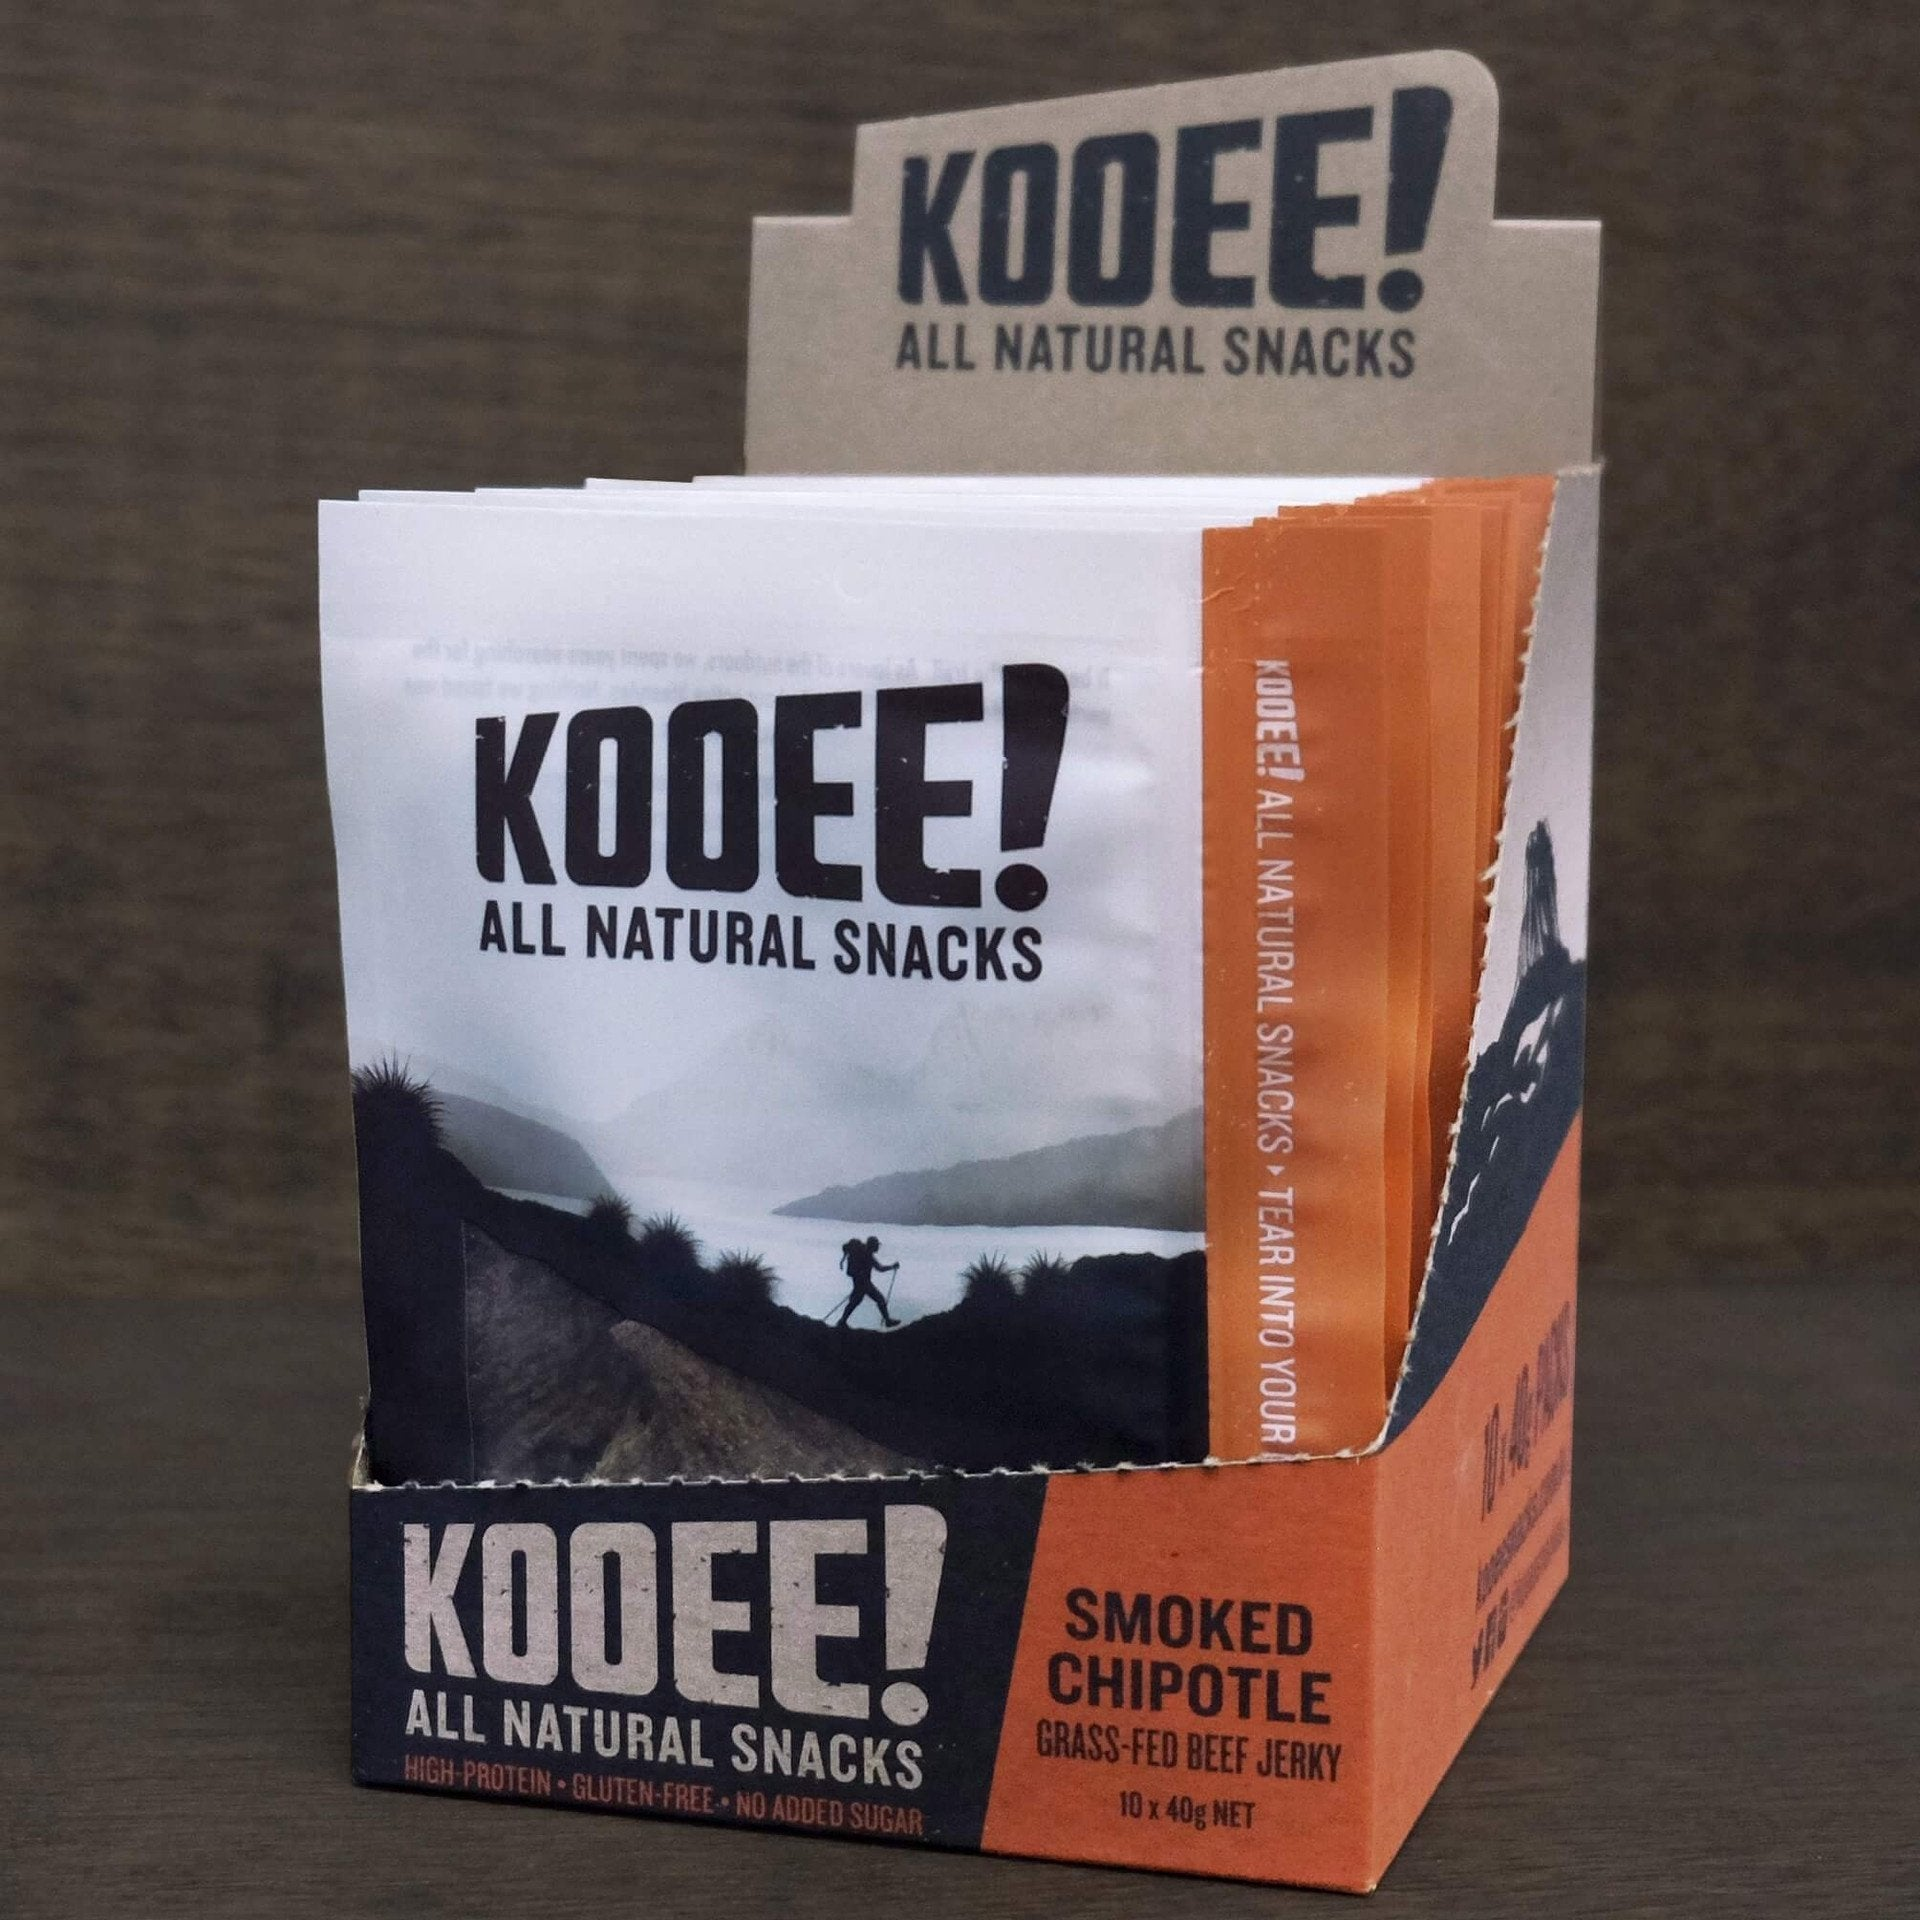 SMOKED CHIPOTLE Grass-Fed Beef Jerky x1 40g by KOOEE SNACKS - Tassie Supps - Snacks